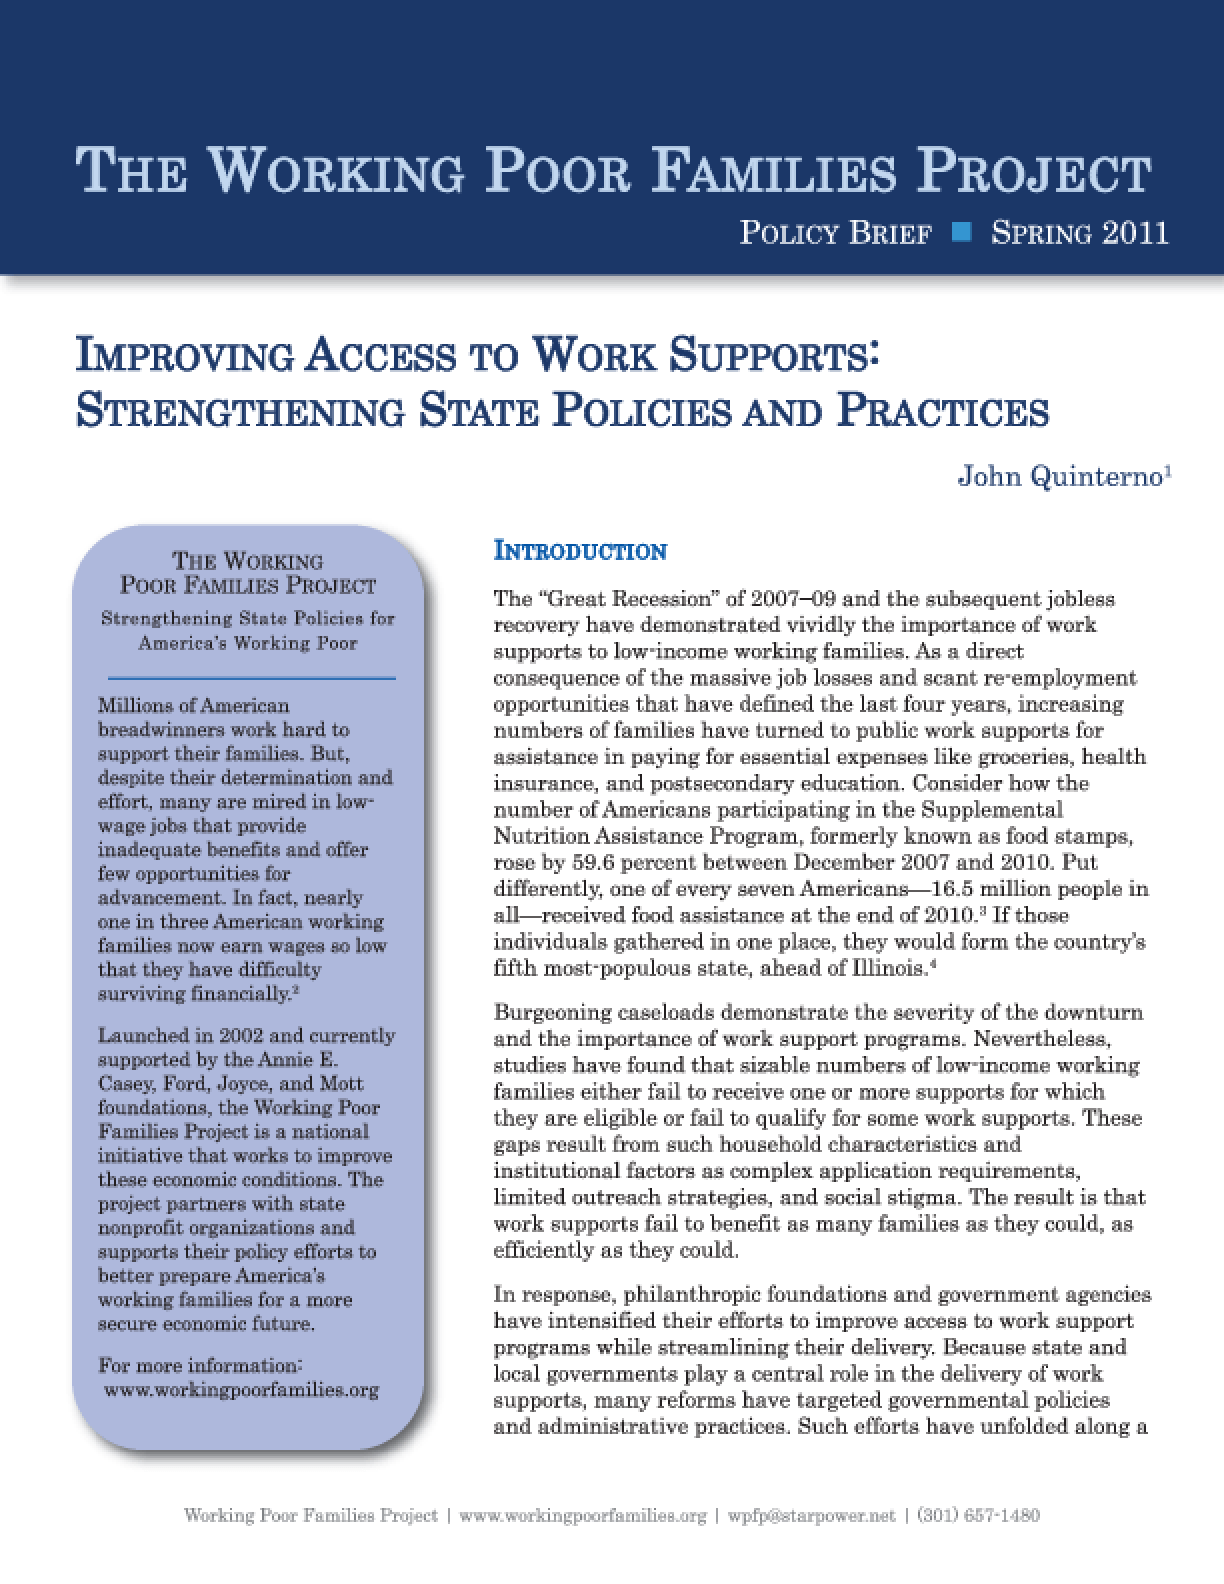 Improving Access to Work Supports: Strengthening State Policies and Practices